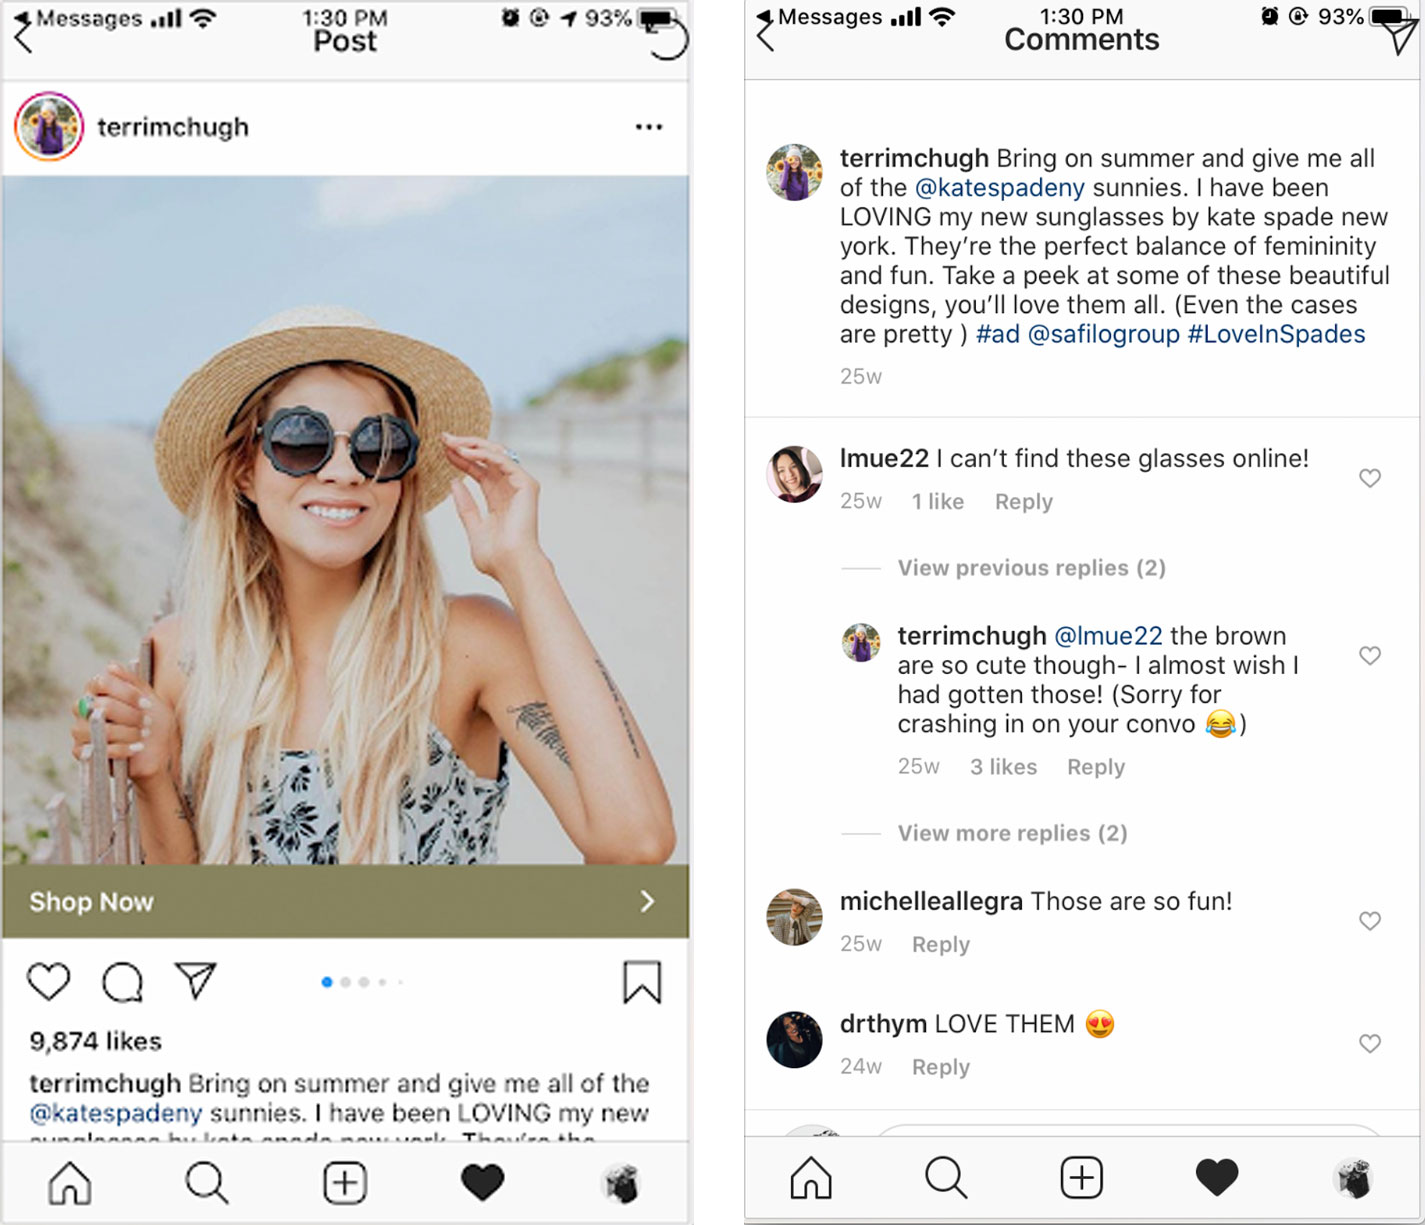 Example of influencer with high quality engagement